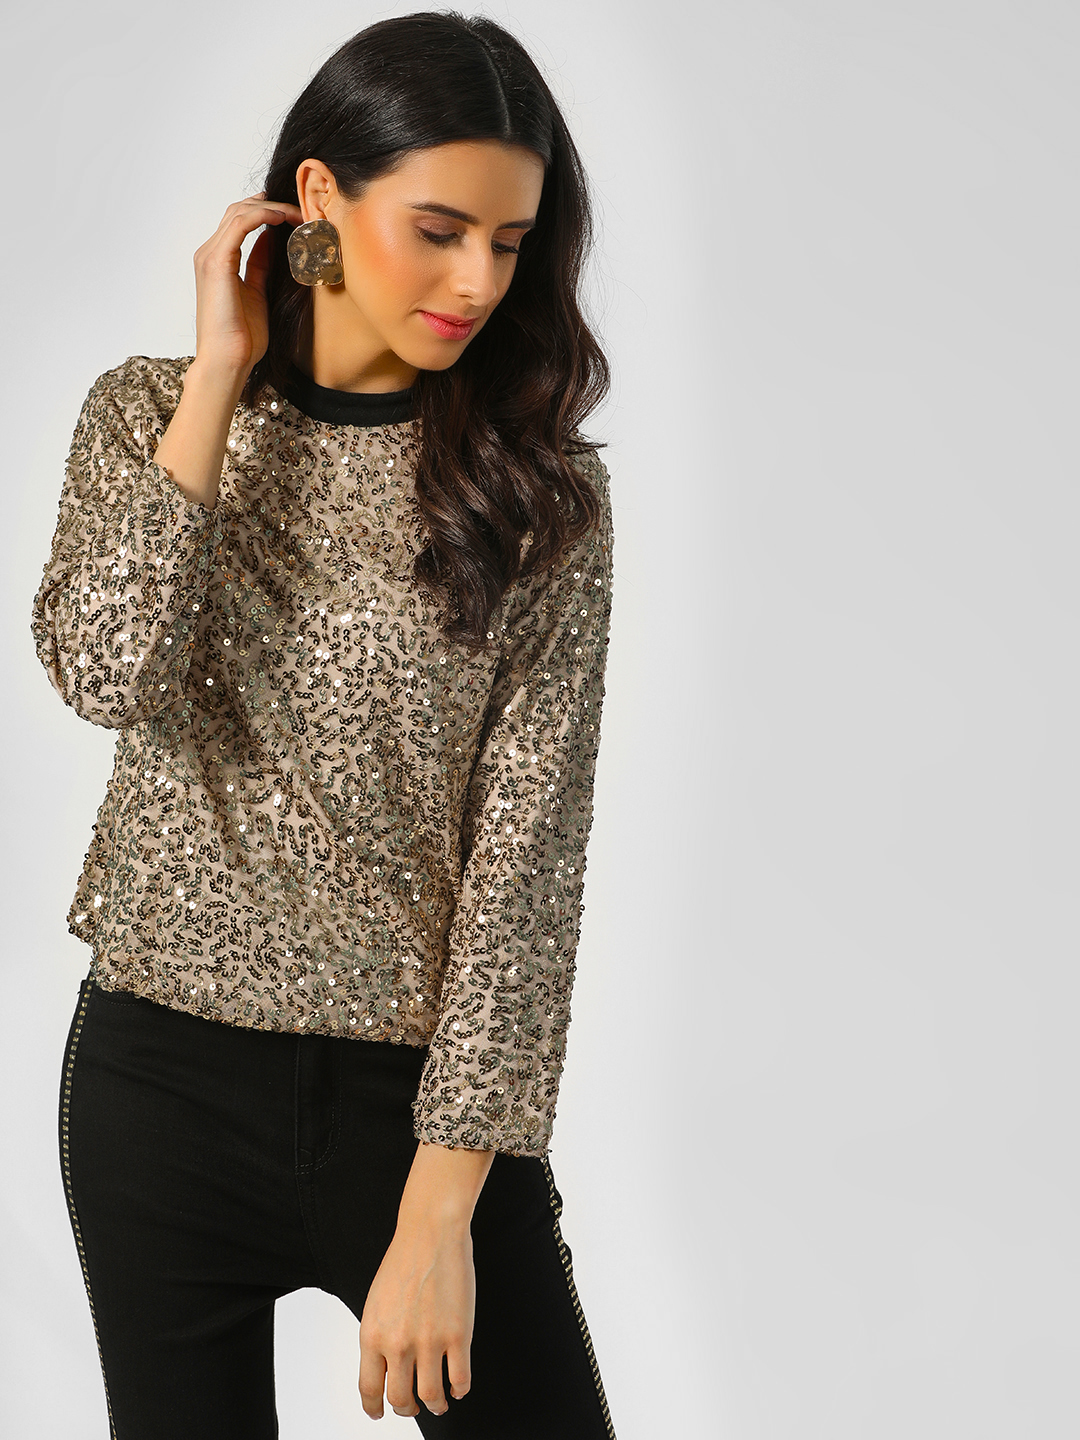 Rena Love Gold Sequins Top With Contrast Collar 1